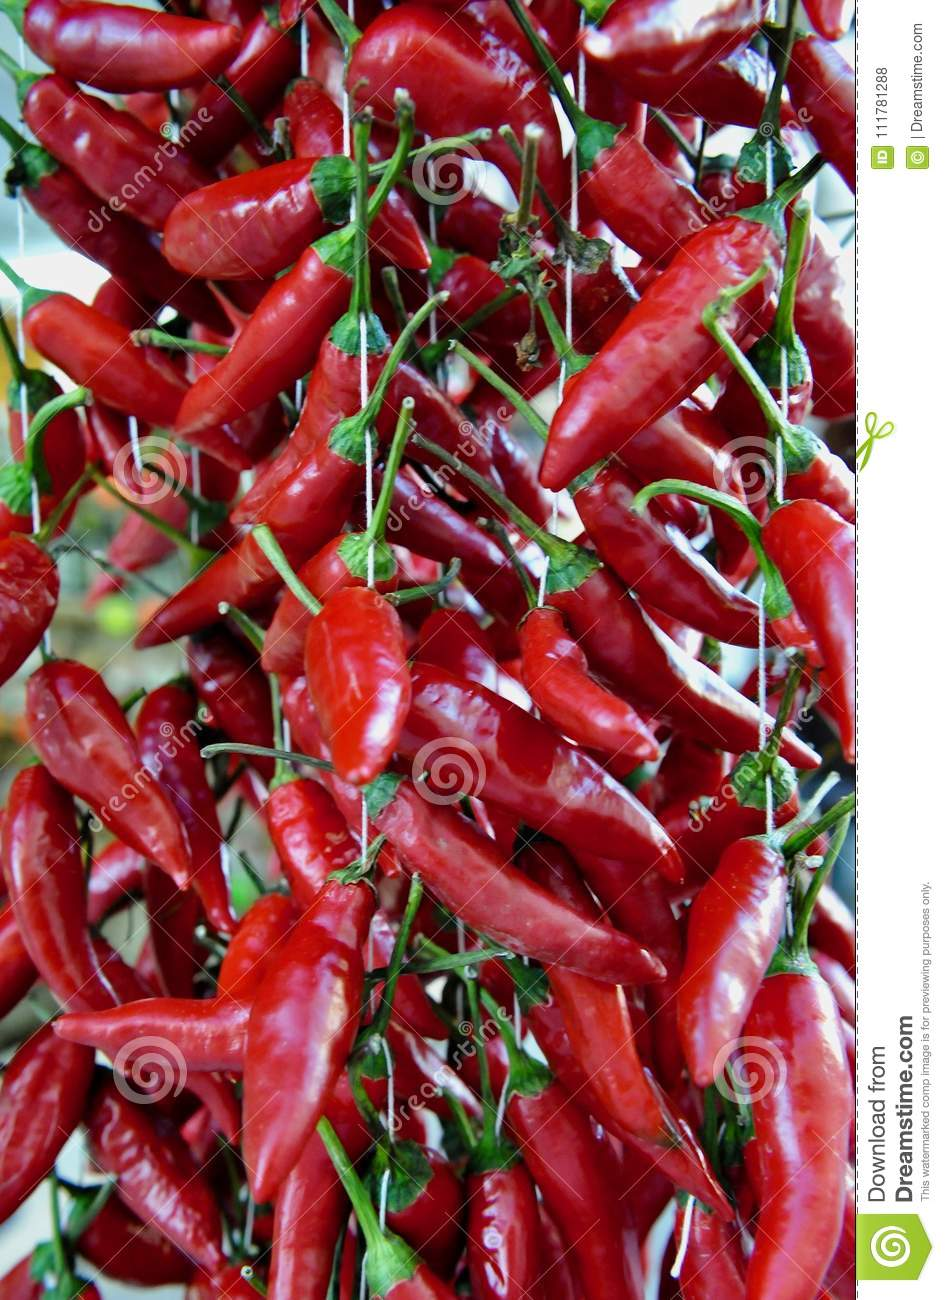 Red , hot, chili peppers.